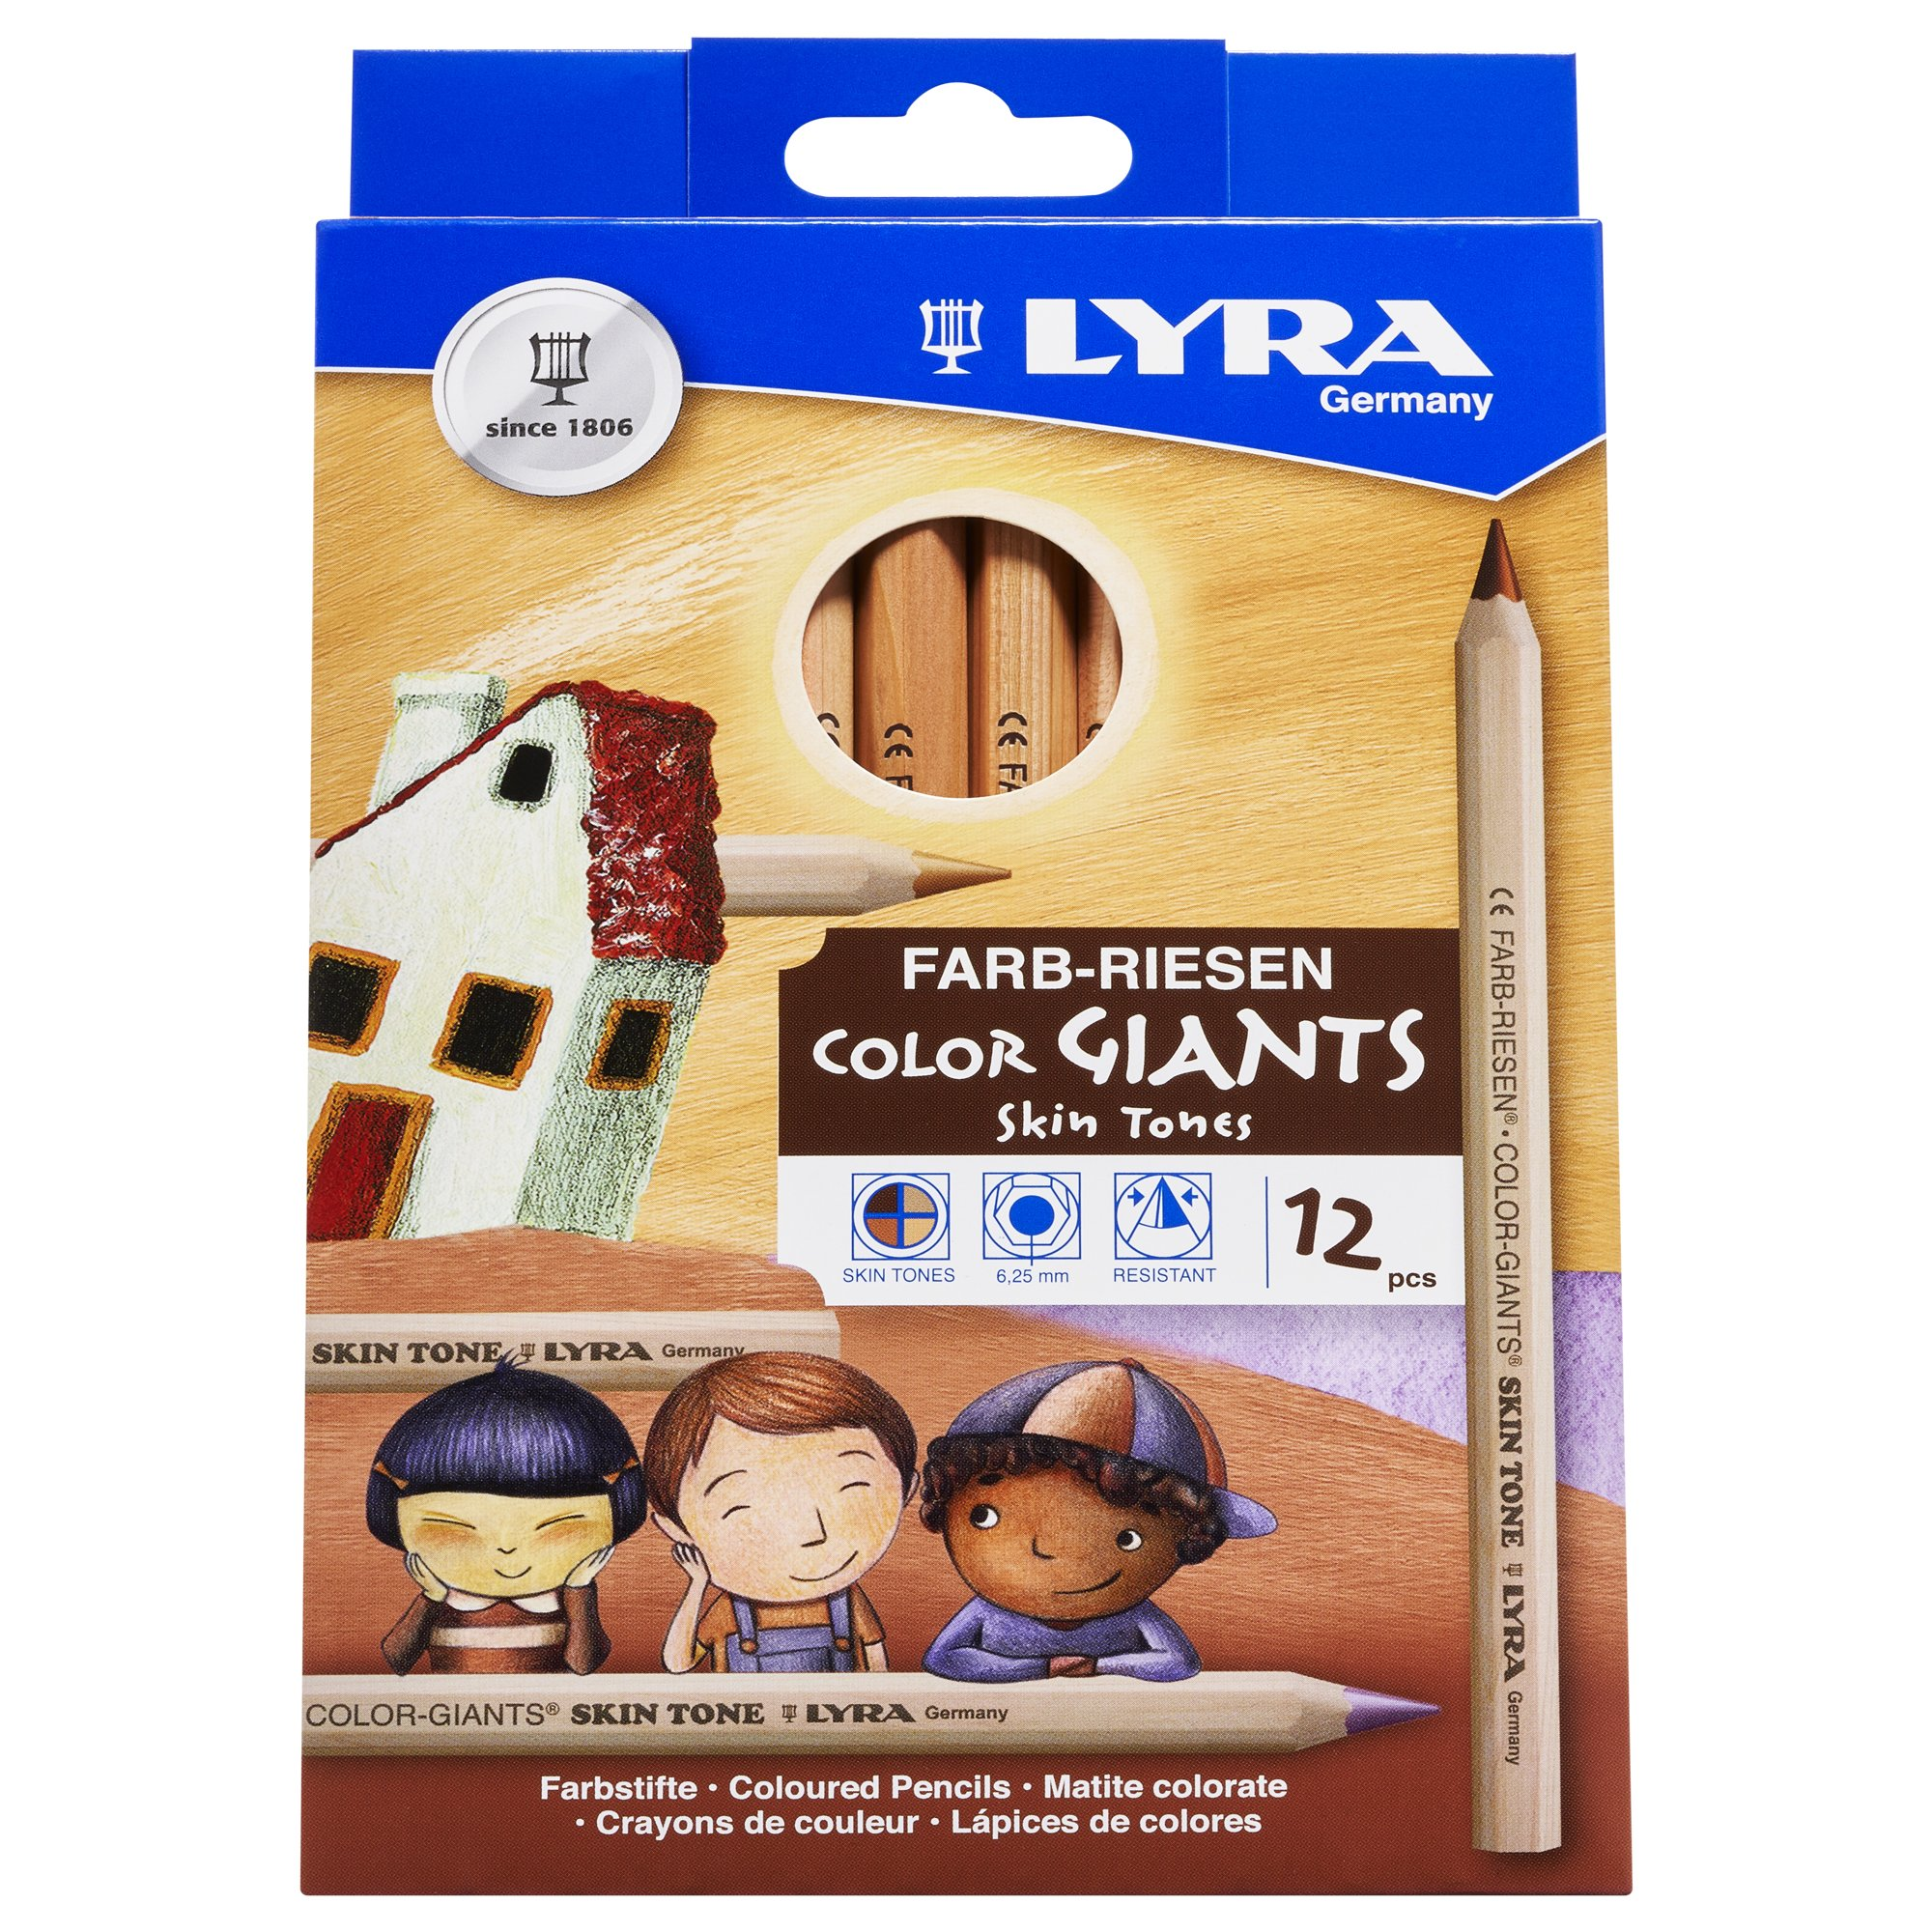 LYRA Color-Giants Colored Pencils, Unlacquered, 6.25 Millimeter Cores, Assorted Skin Tone Colors, 12-Pack (3931124) by Lyra